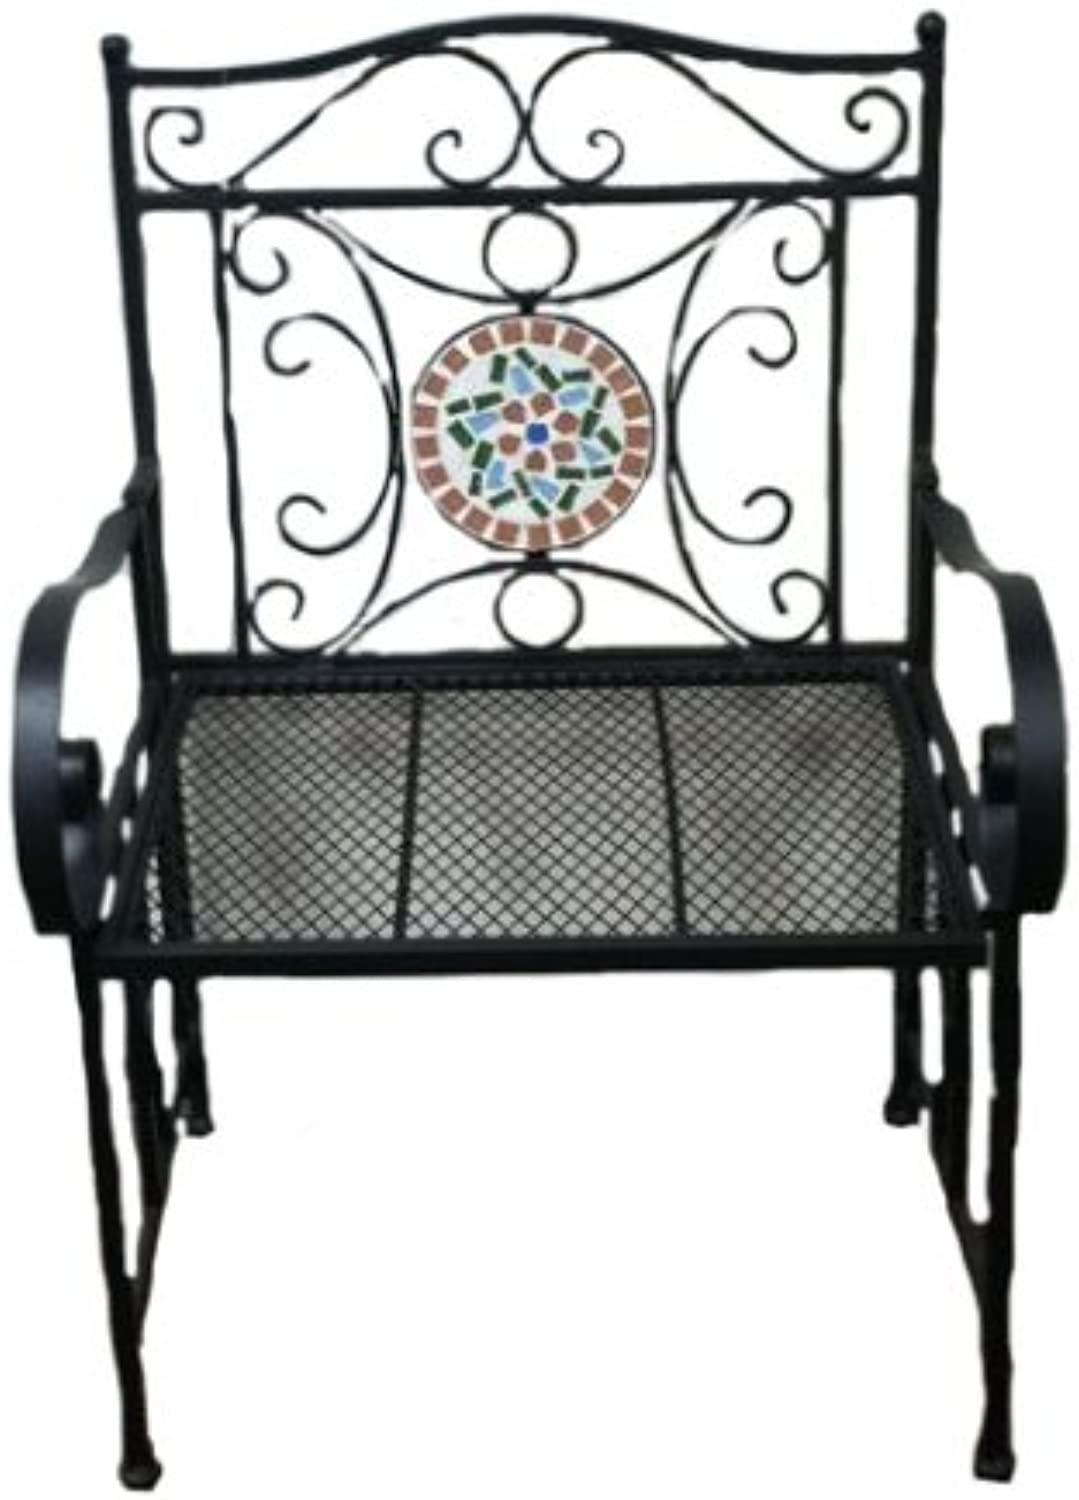 Essential Decor Entrada Collection EN2180 Metal Chair with Mosaic Pattern, 24.2 by 18.1 by 36.8-Inch